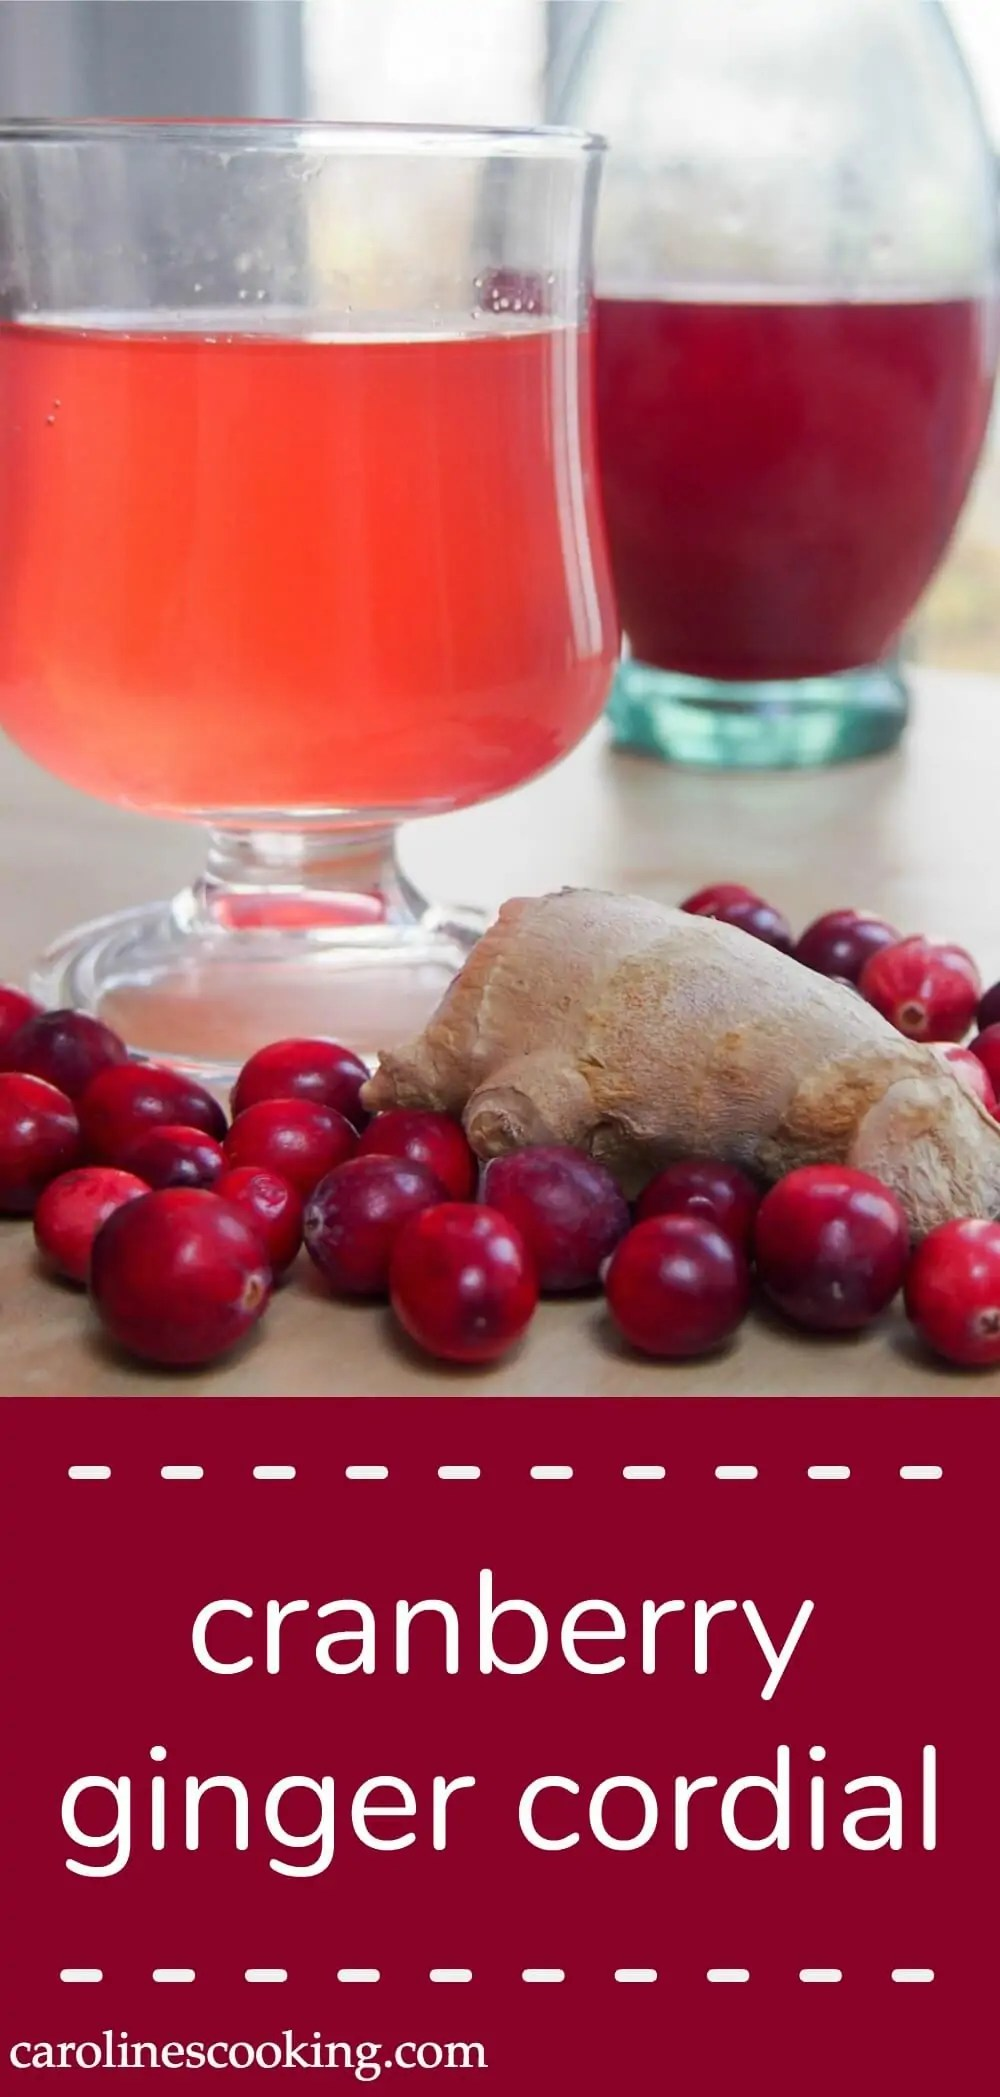 Cranberry and ginger cordial can be mixed with hot or cold water to make a refreshing drink with the tang of ginger balanced out with the fruity cranberry.